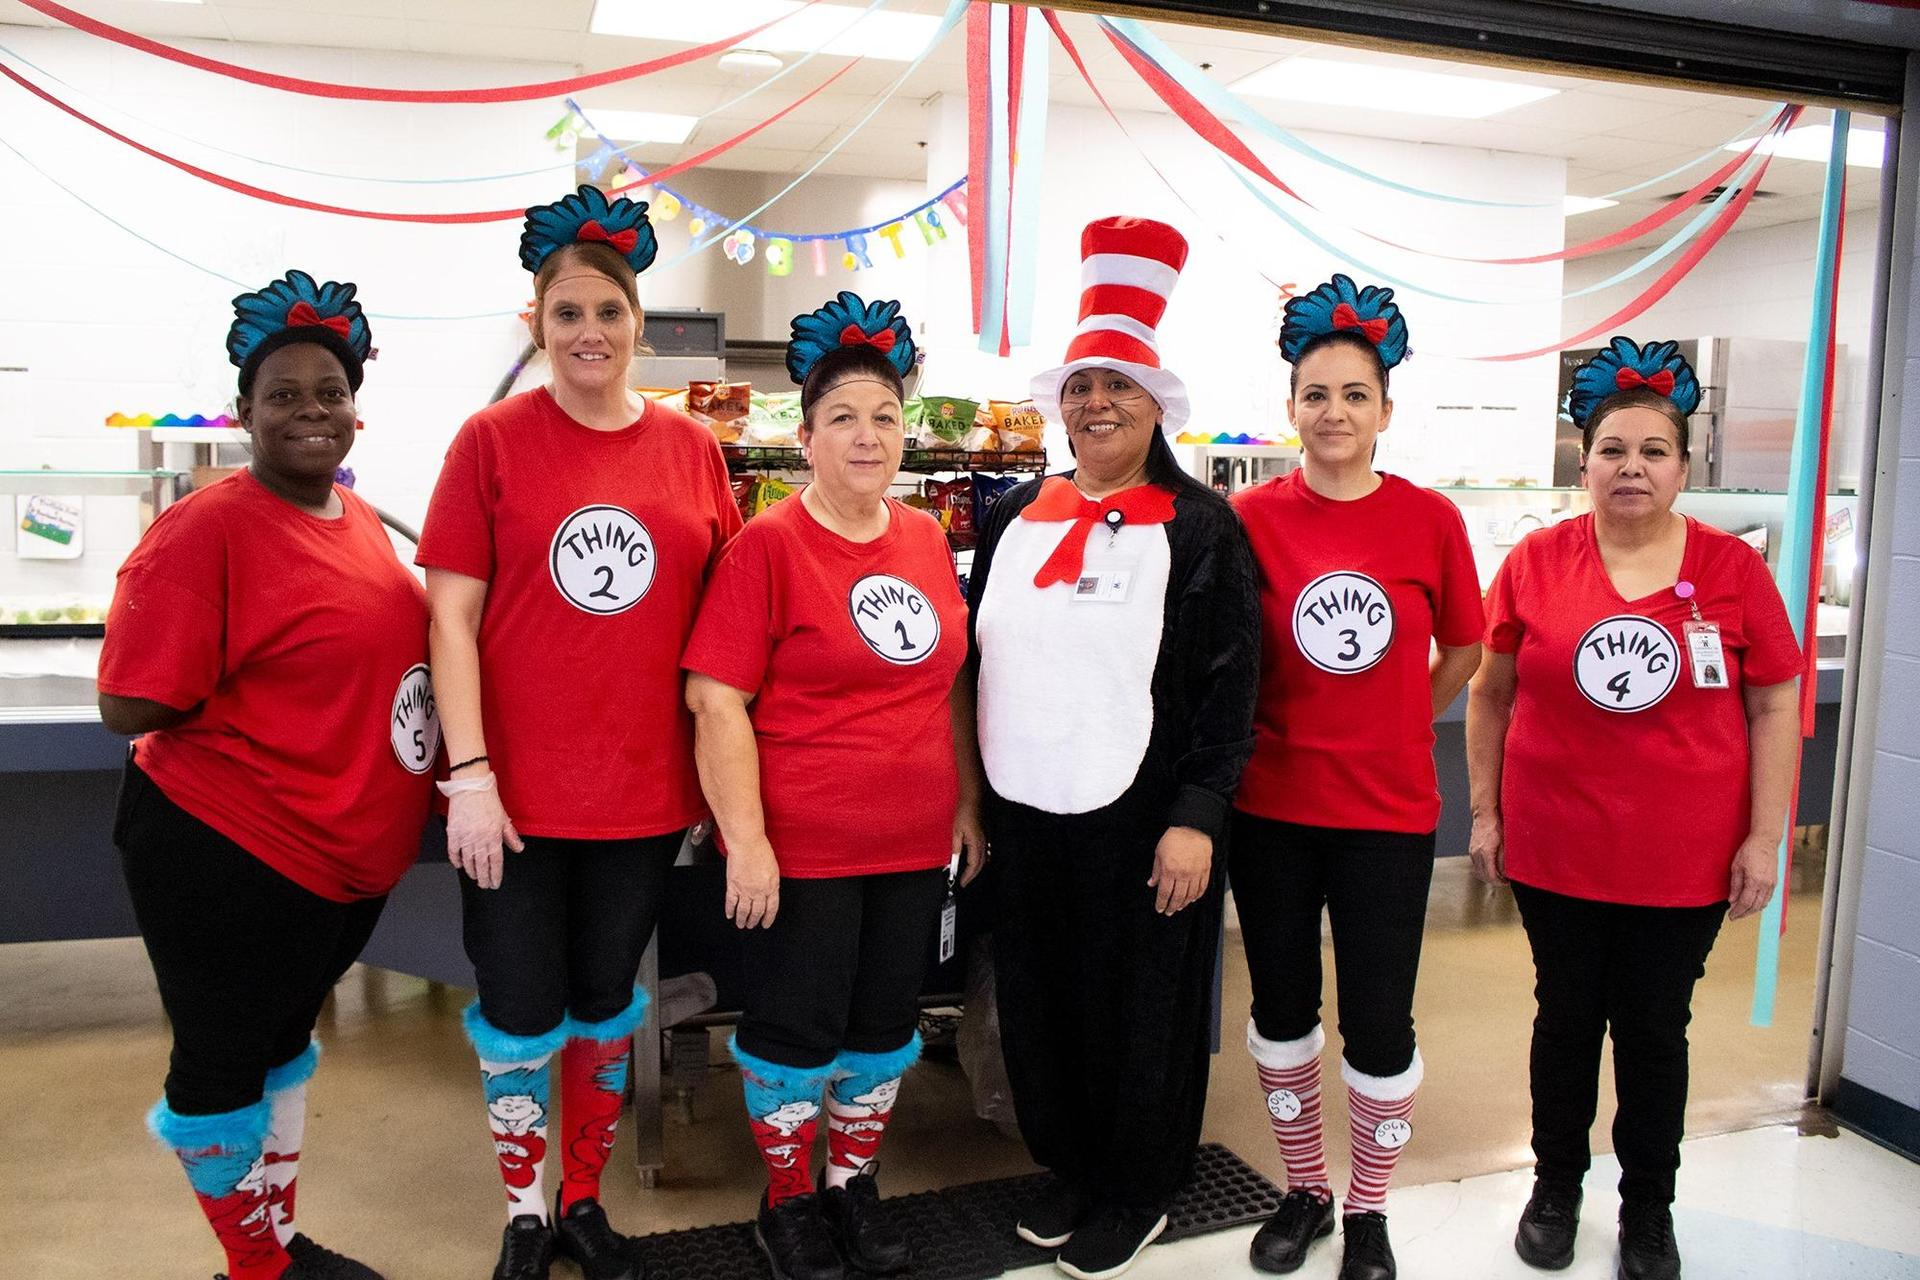 5 ladies dressed up as Cat in the Hat and Thing for Dr. Seuss birthday